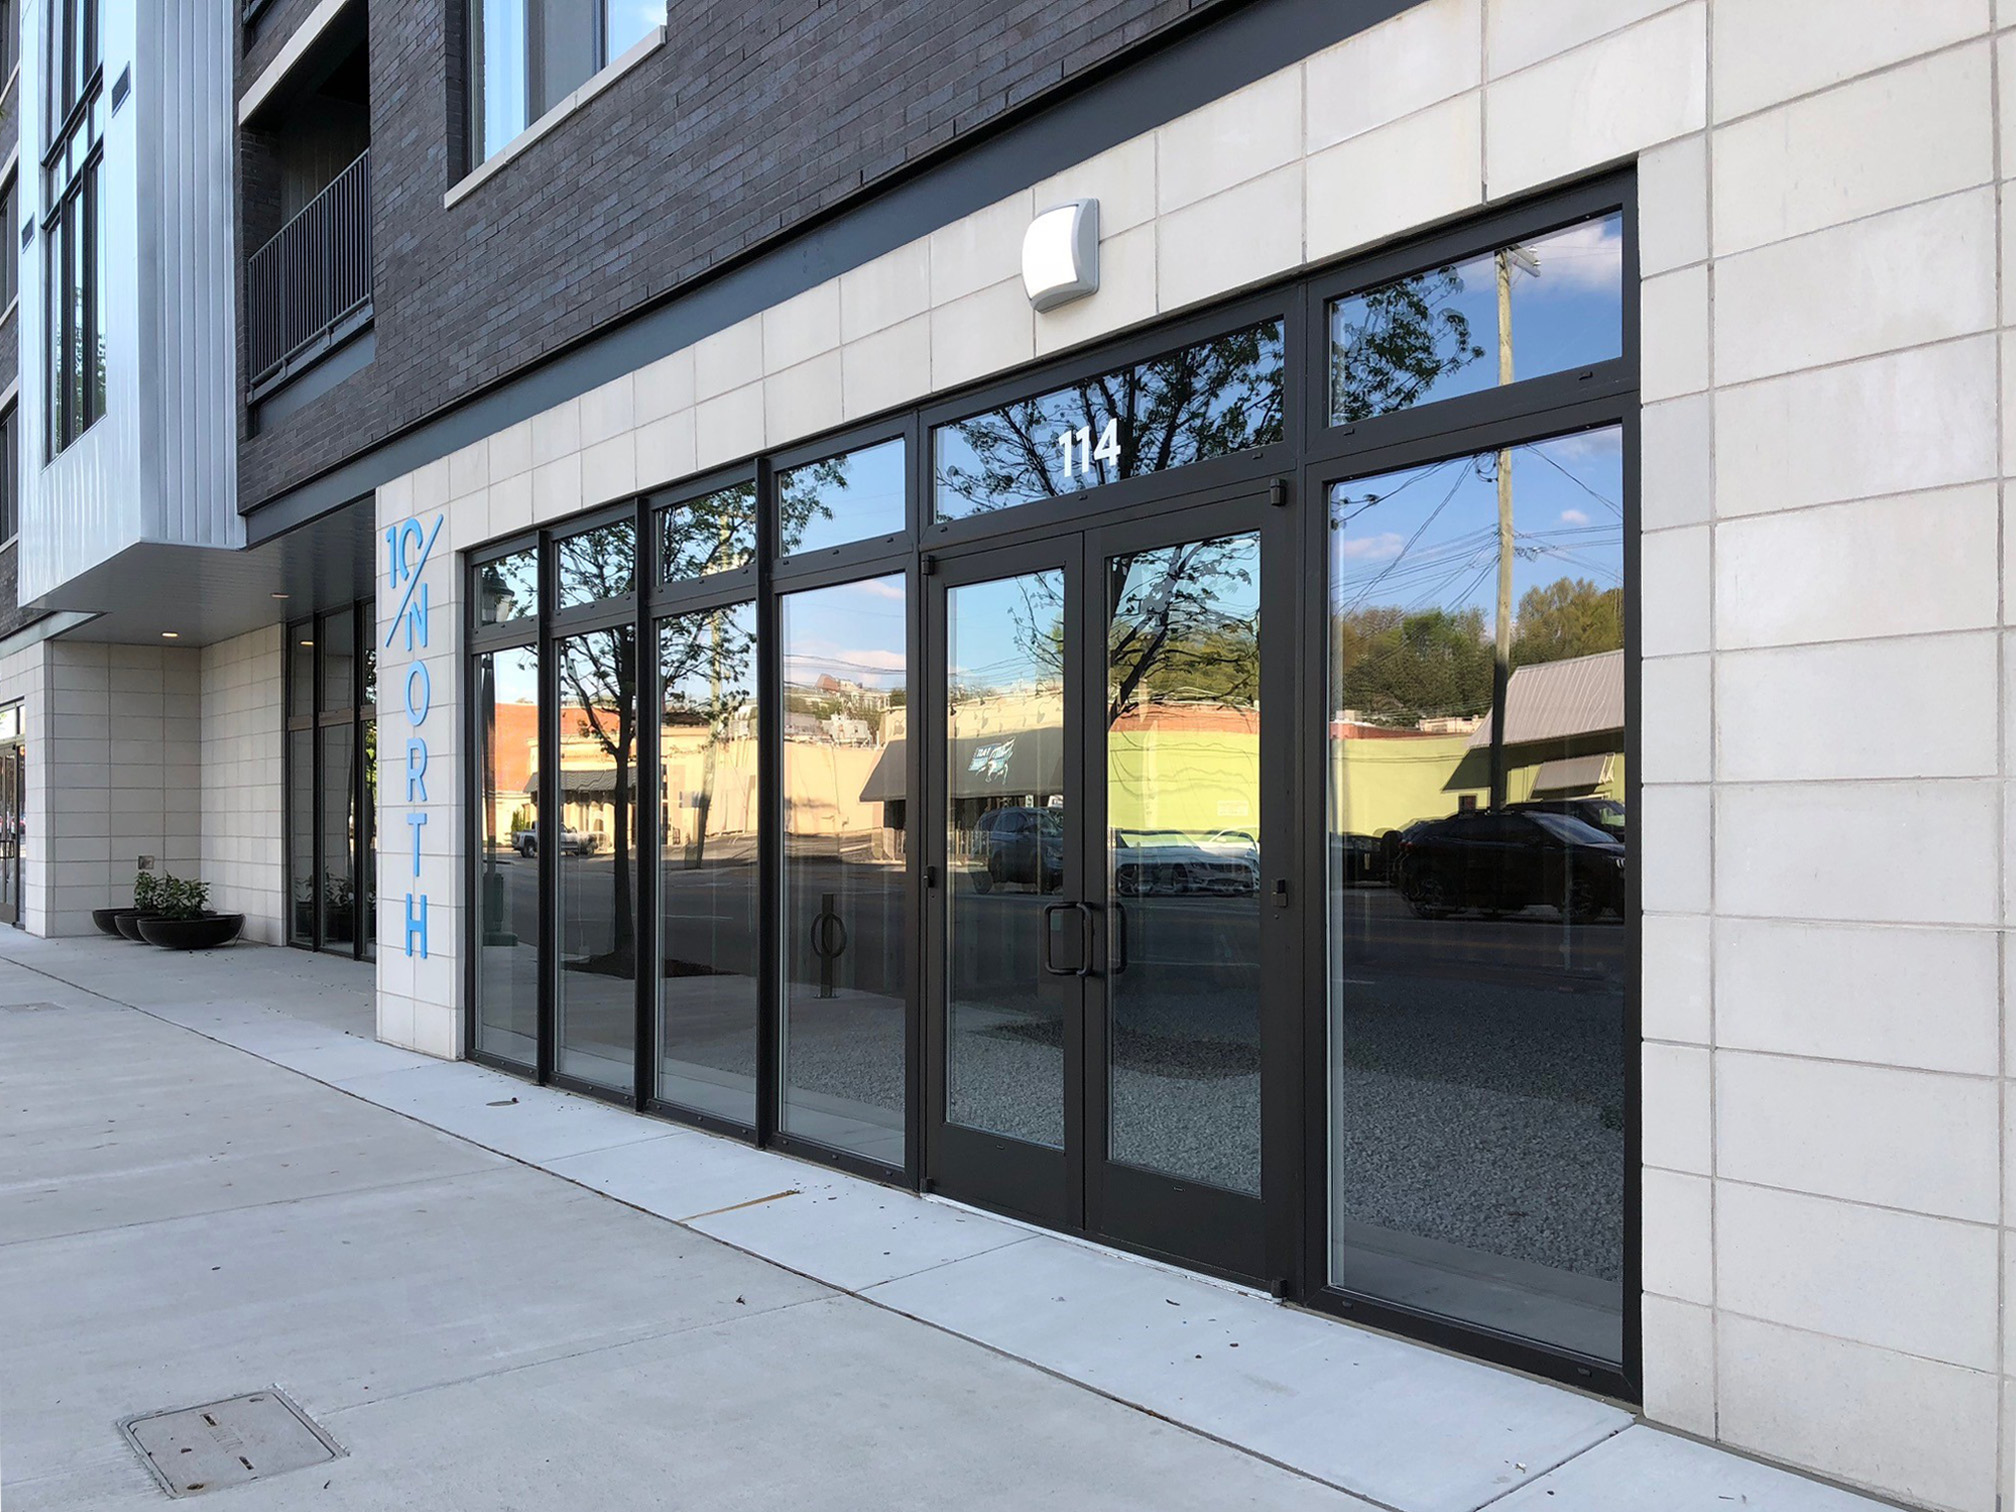 10/North Apartments with INTUS Windows Arcade steel reinforced double pane windows, storefronts, & balcony doors